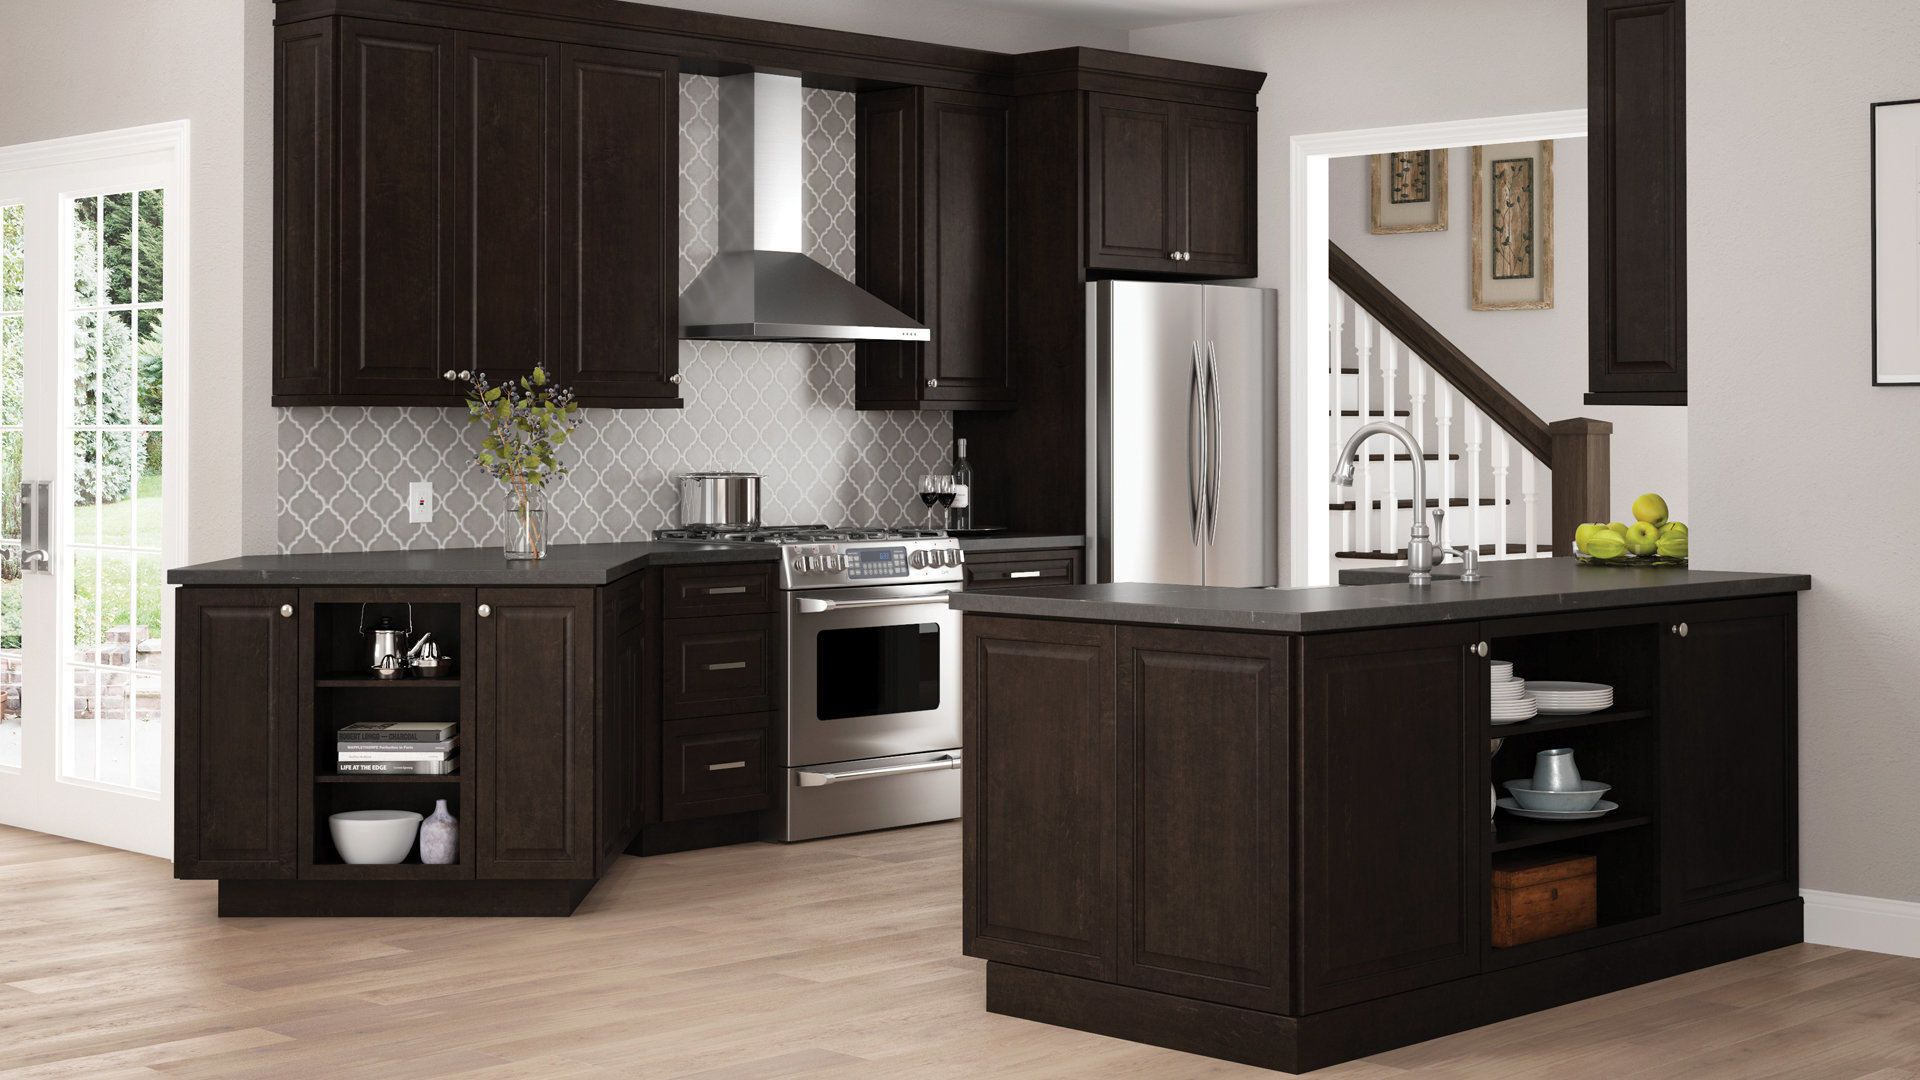 Shop Our Kitchen Cabinets Department To Customize Your Gretna Wall Cabinets In Espresso T Small Kitchen Cabinets Home Depot Kitchen Kitchen Cabinets Home Depot